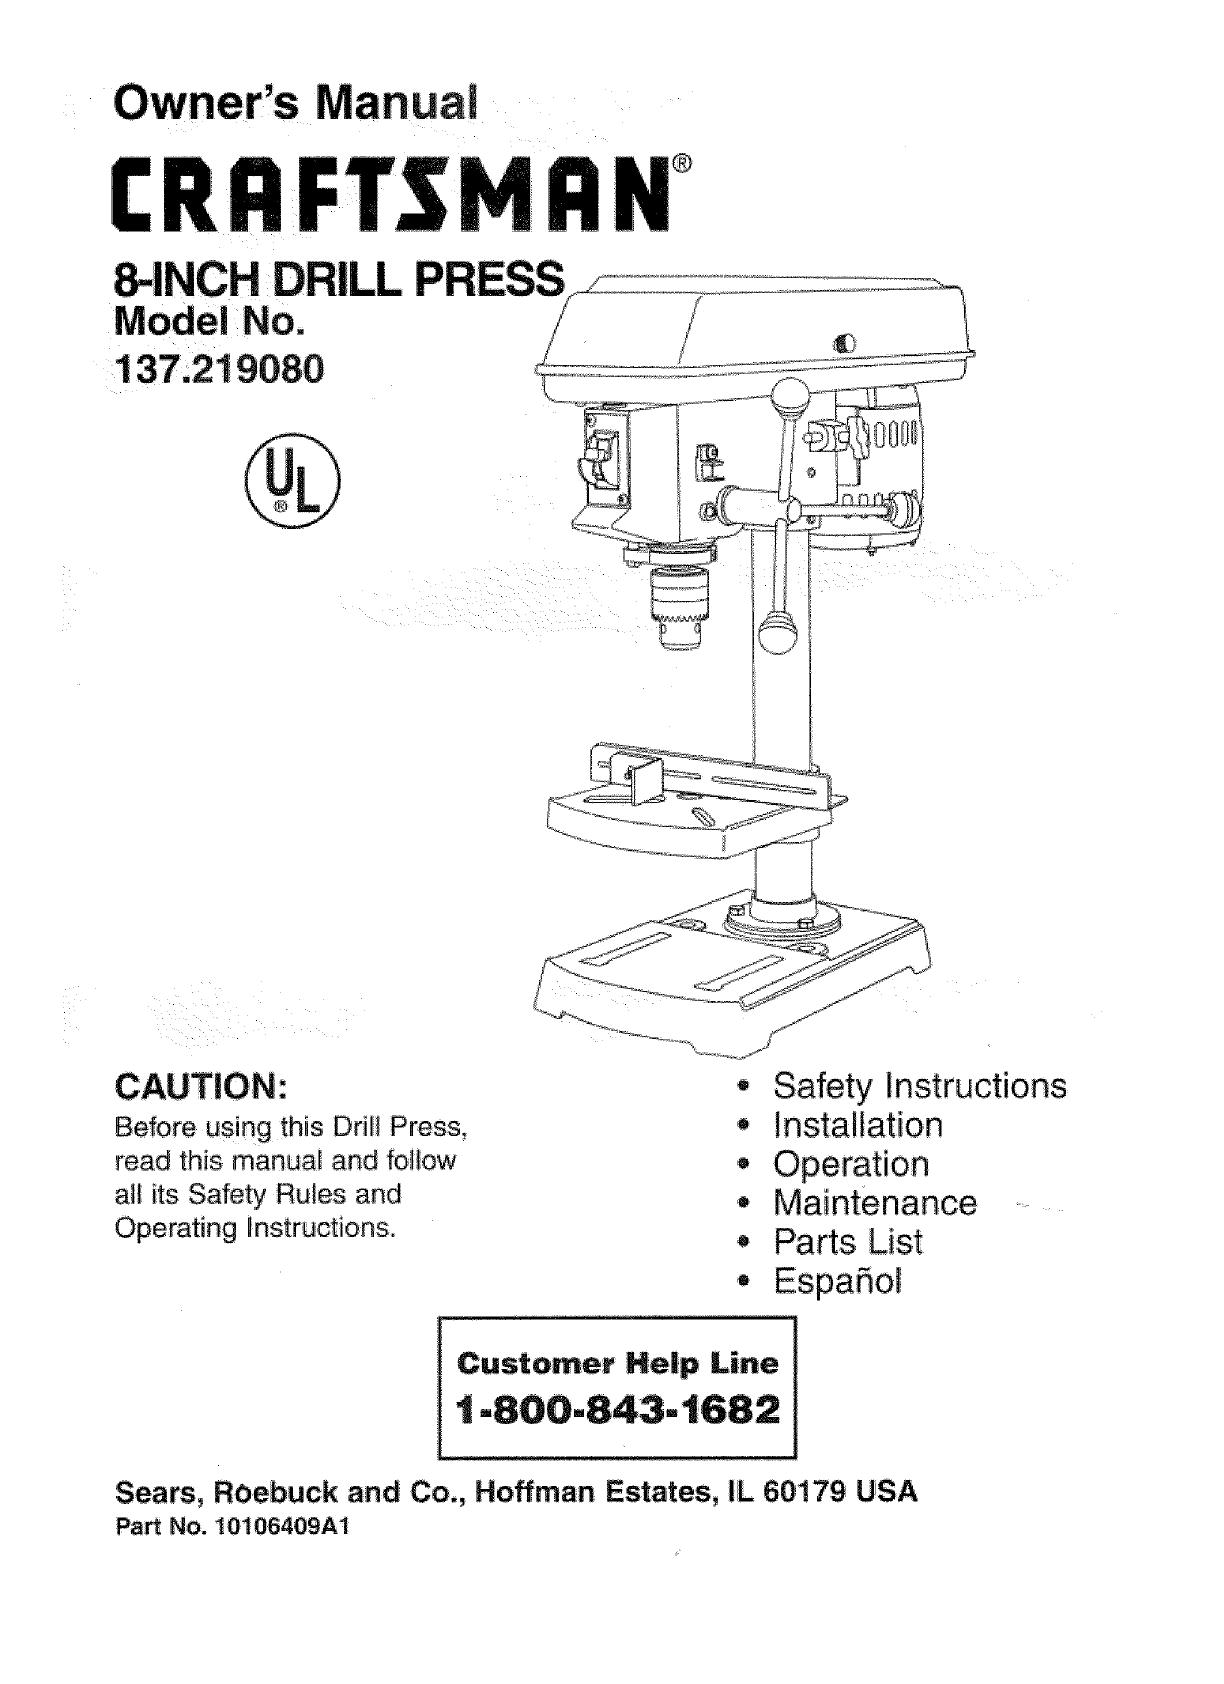 hight resolution of craftsman 137219080 user manual 8 drill press manuals and guides l0707388